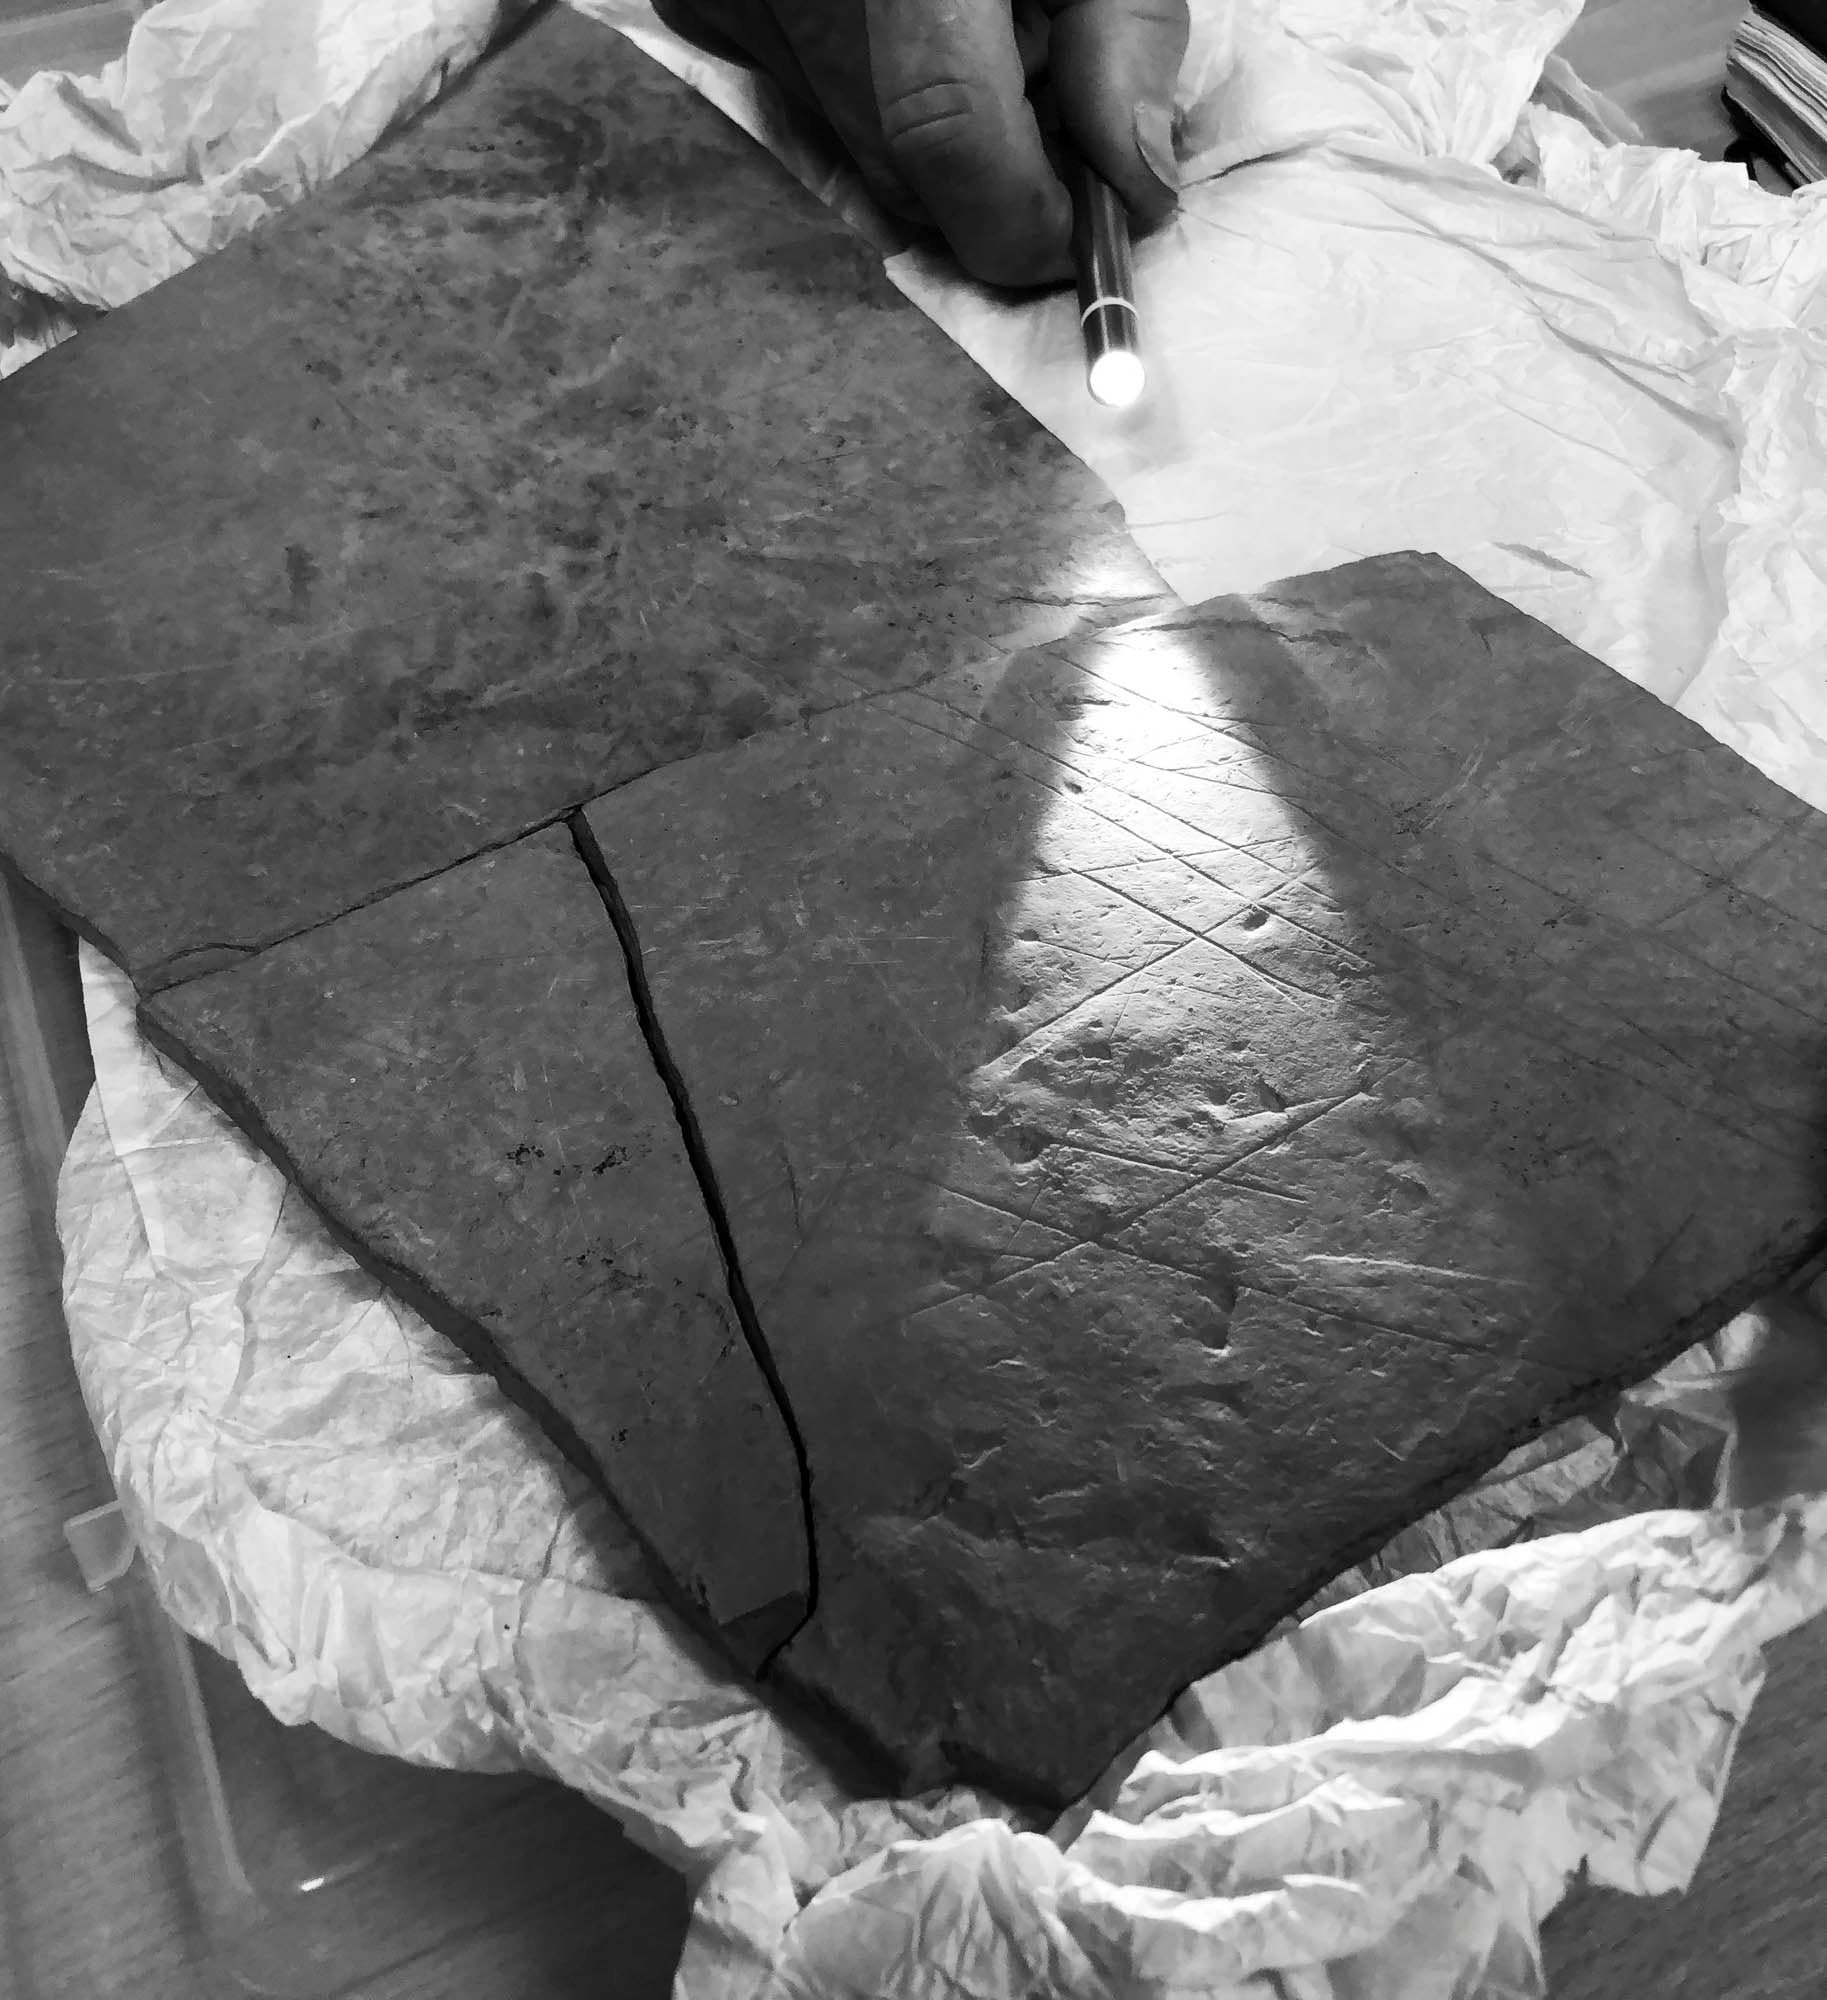 Incised stones from Ness of Brodgar - the incisions are prehistoric on these think pieces of Stone